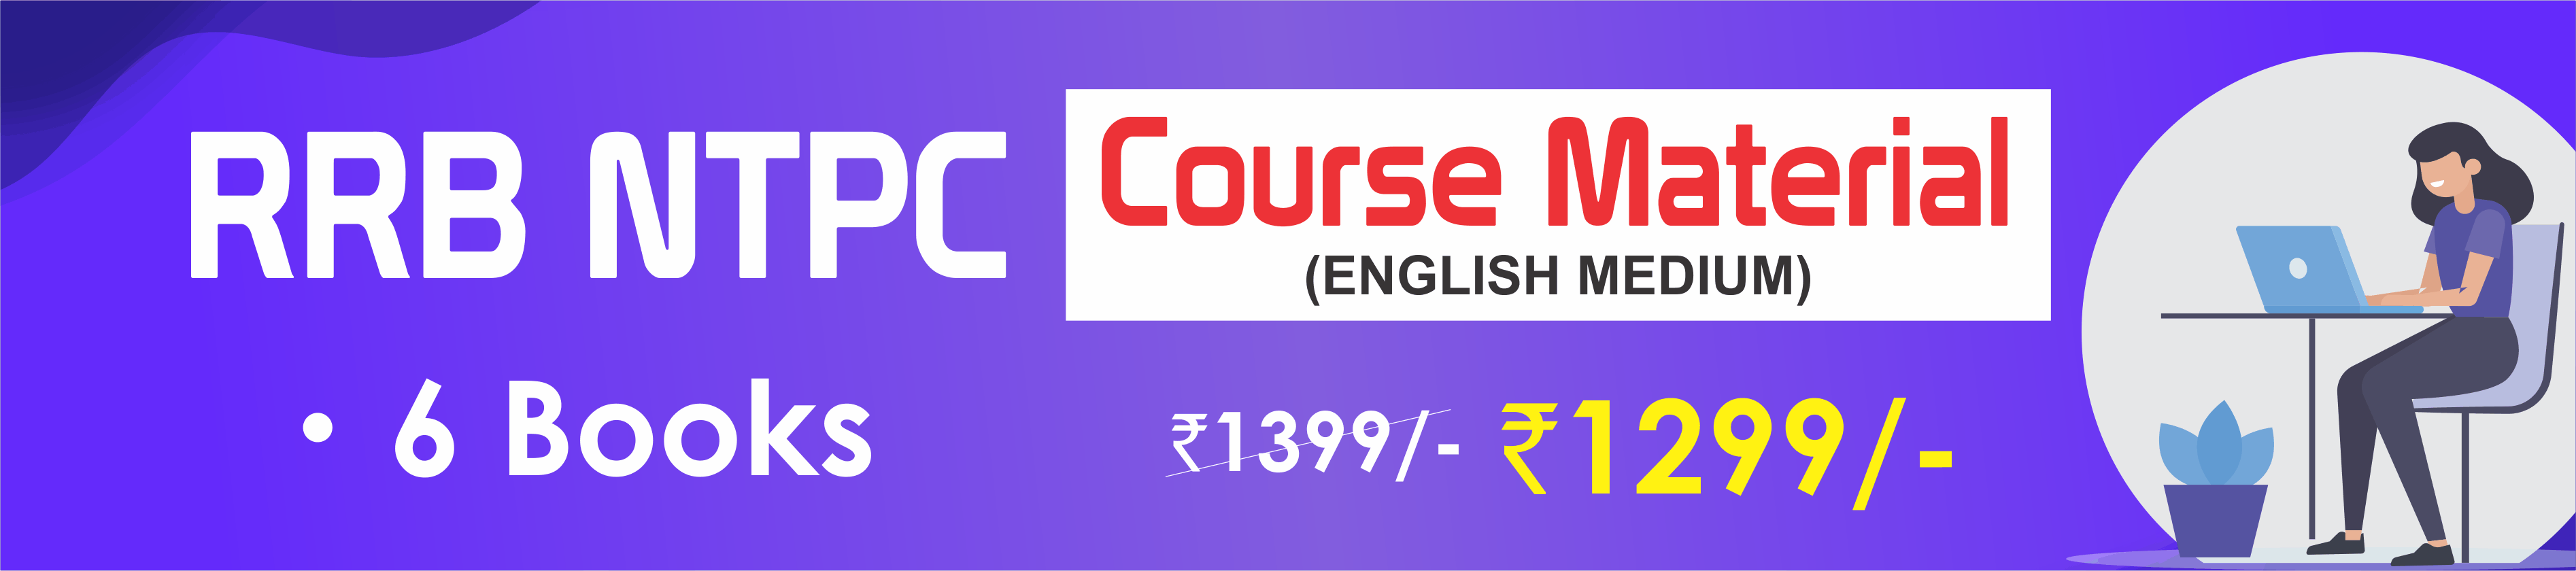 rrb ntpc course material english medium